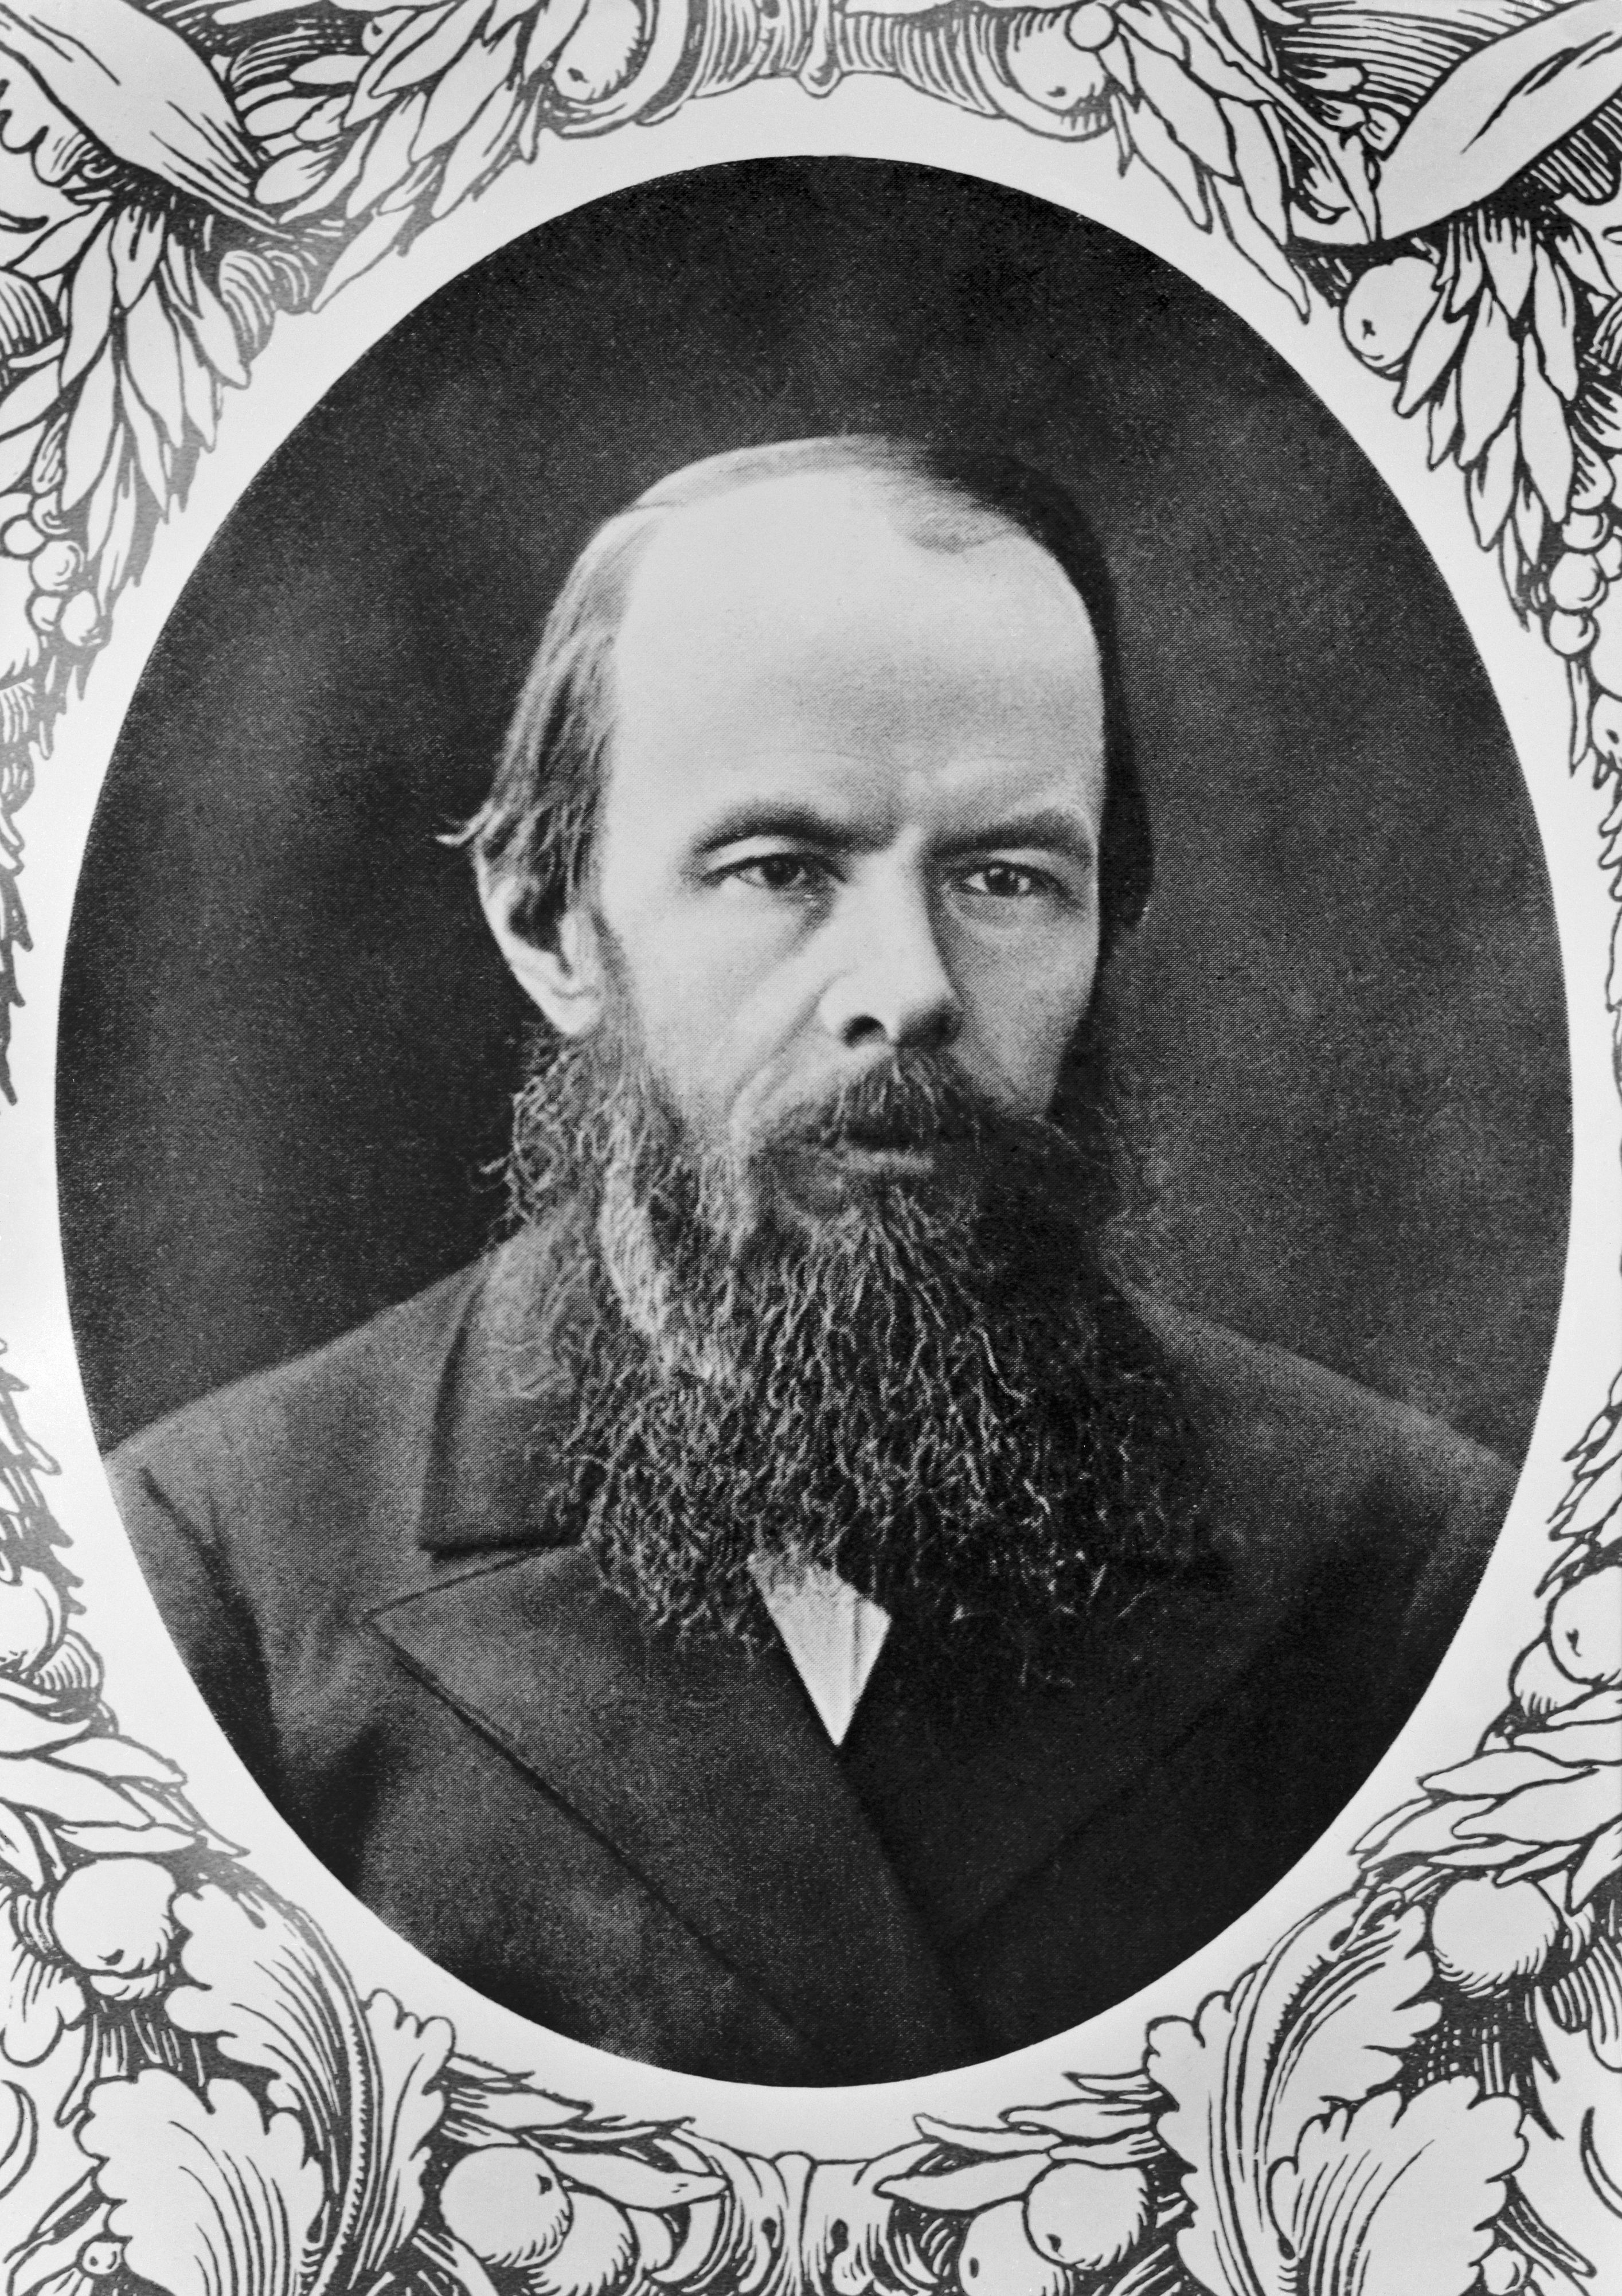 mill vs dostoevsky Mill vs dostoevsky topics: friedrich nietzsche, existentialism, fyodor dostoyevsky pages: 3 i will compare js mill's views on the social function of freedom with that of fyodor dostoevsky's.